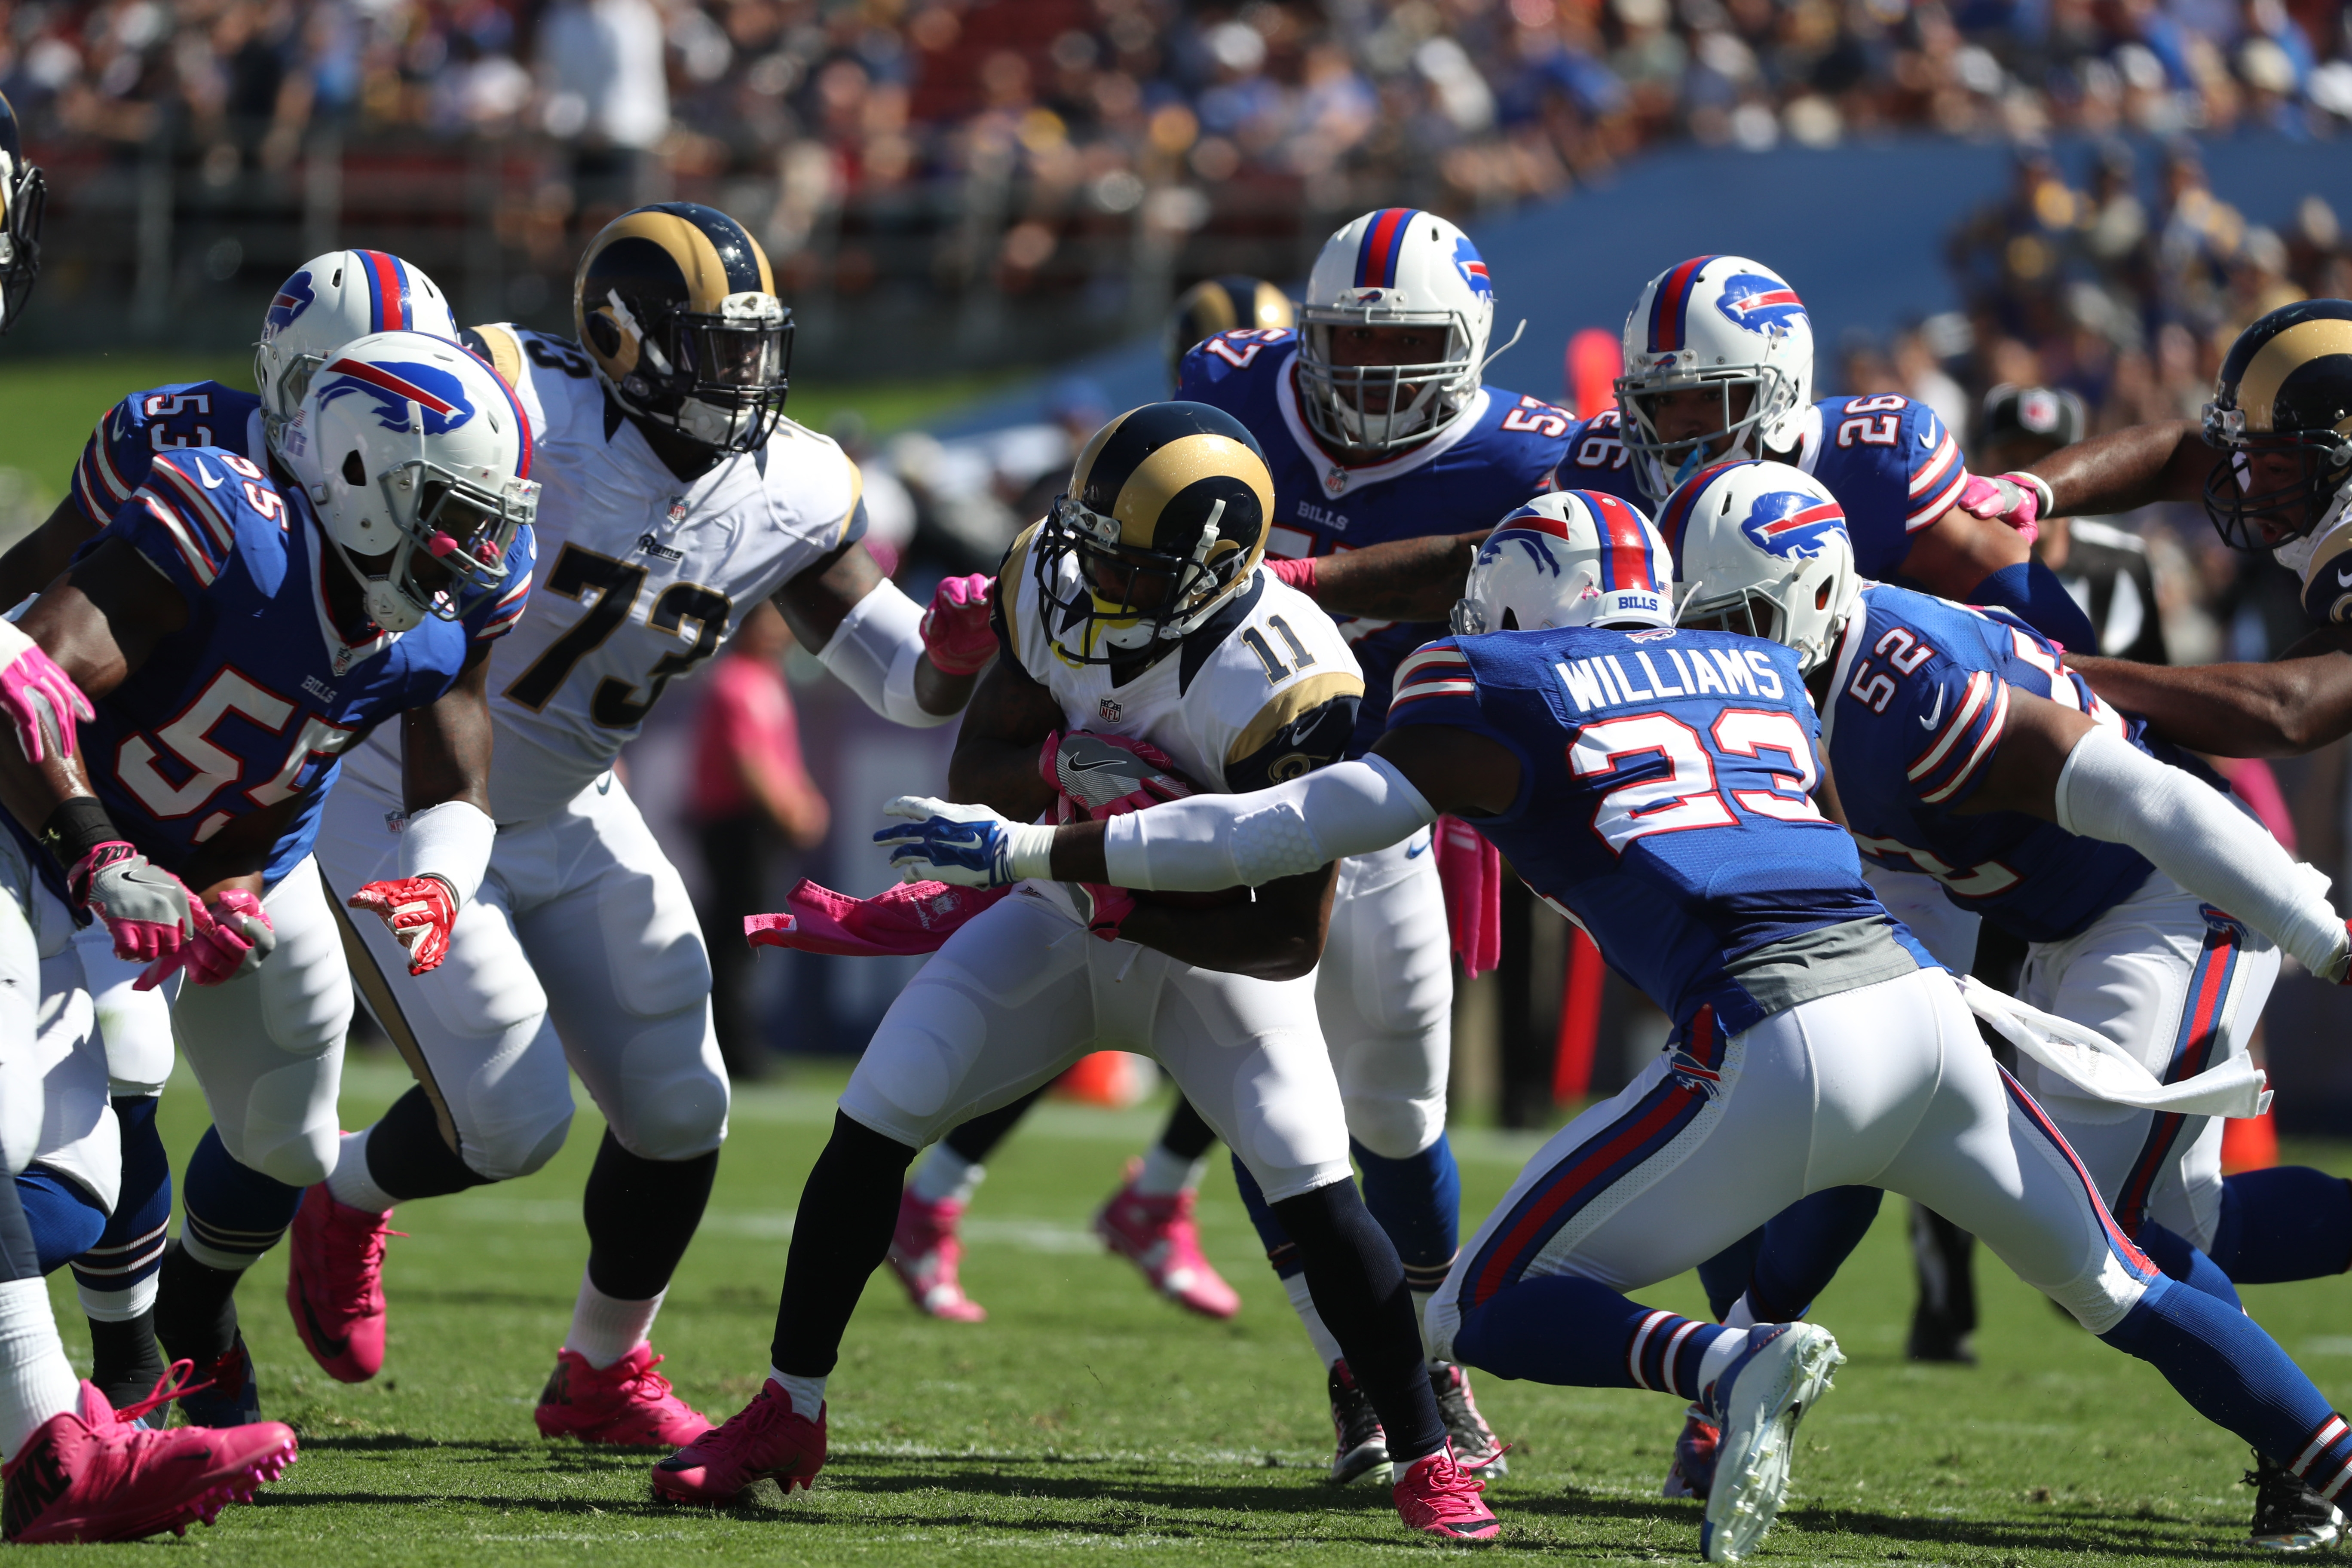 The Bills' defense had the Rams surrounded for much of the afternoon.